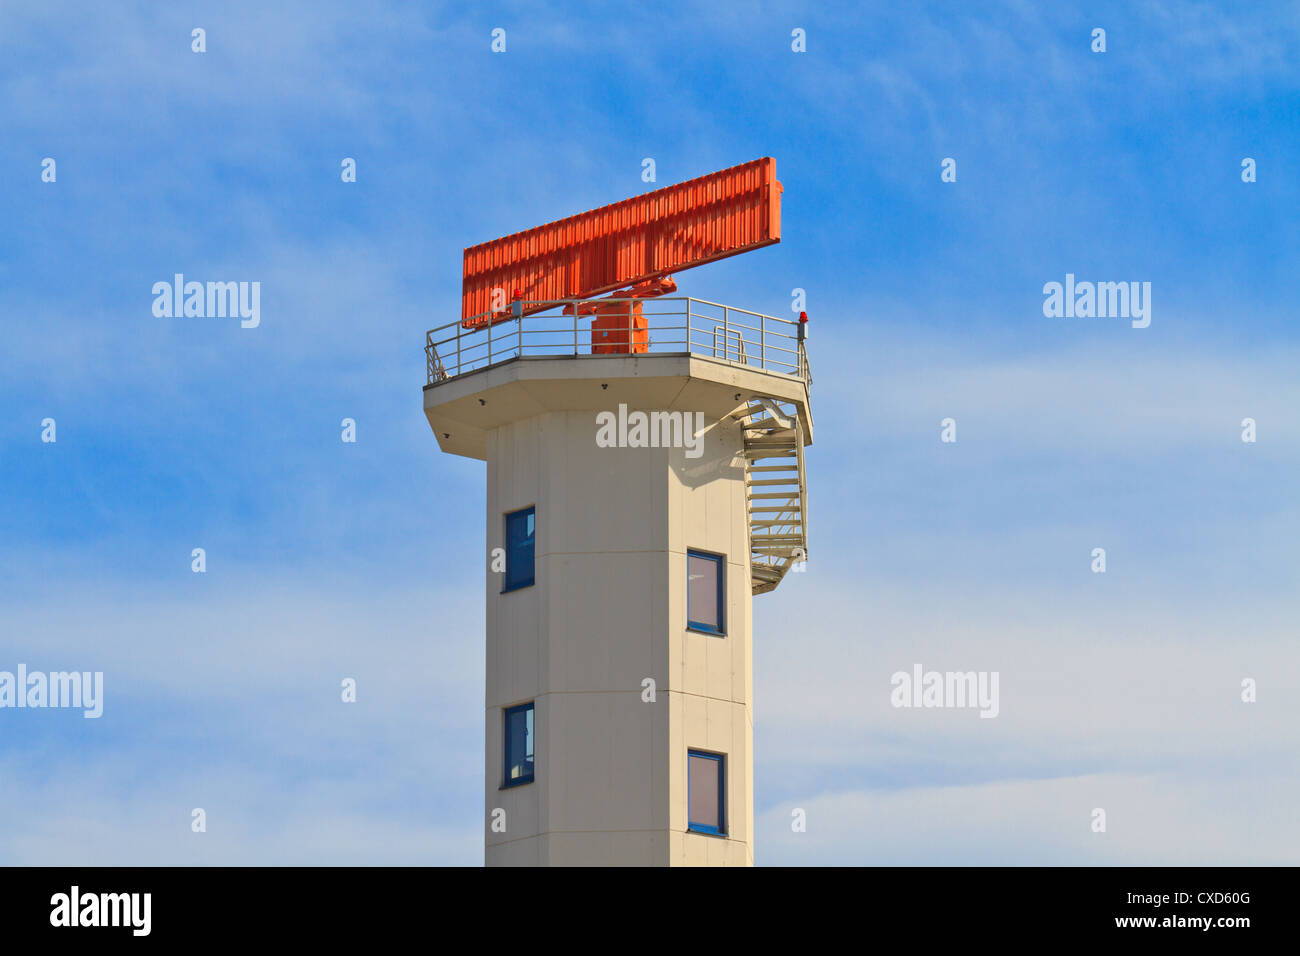 White Airport Tower with red radar on top - Stock Image